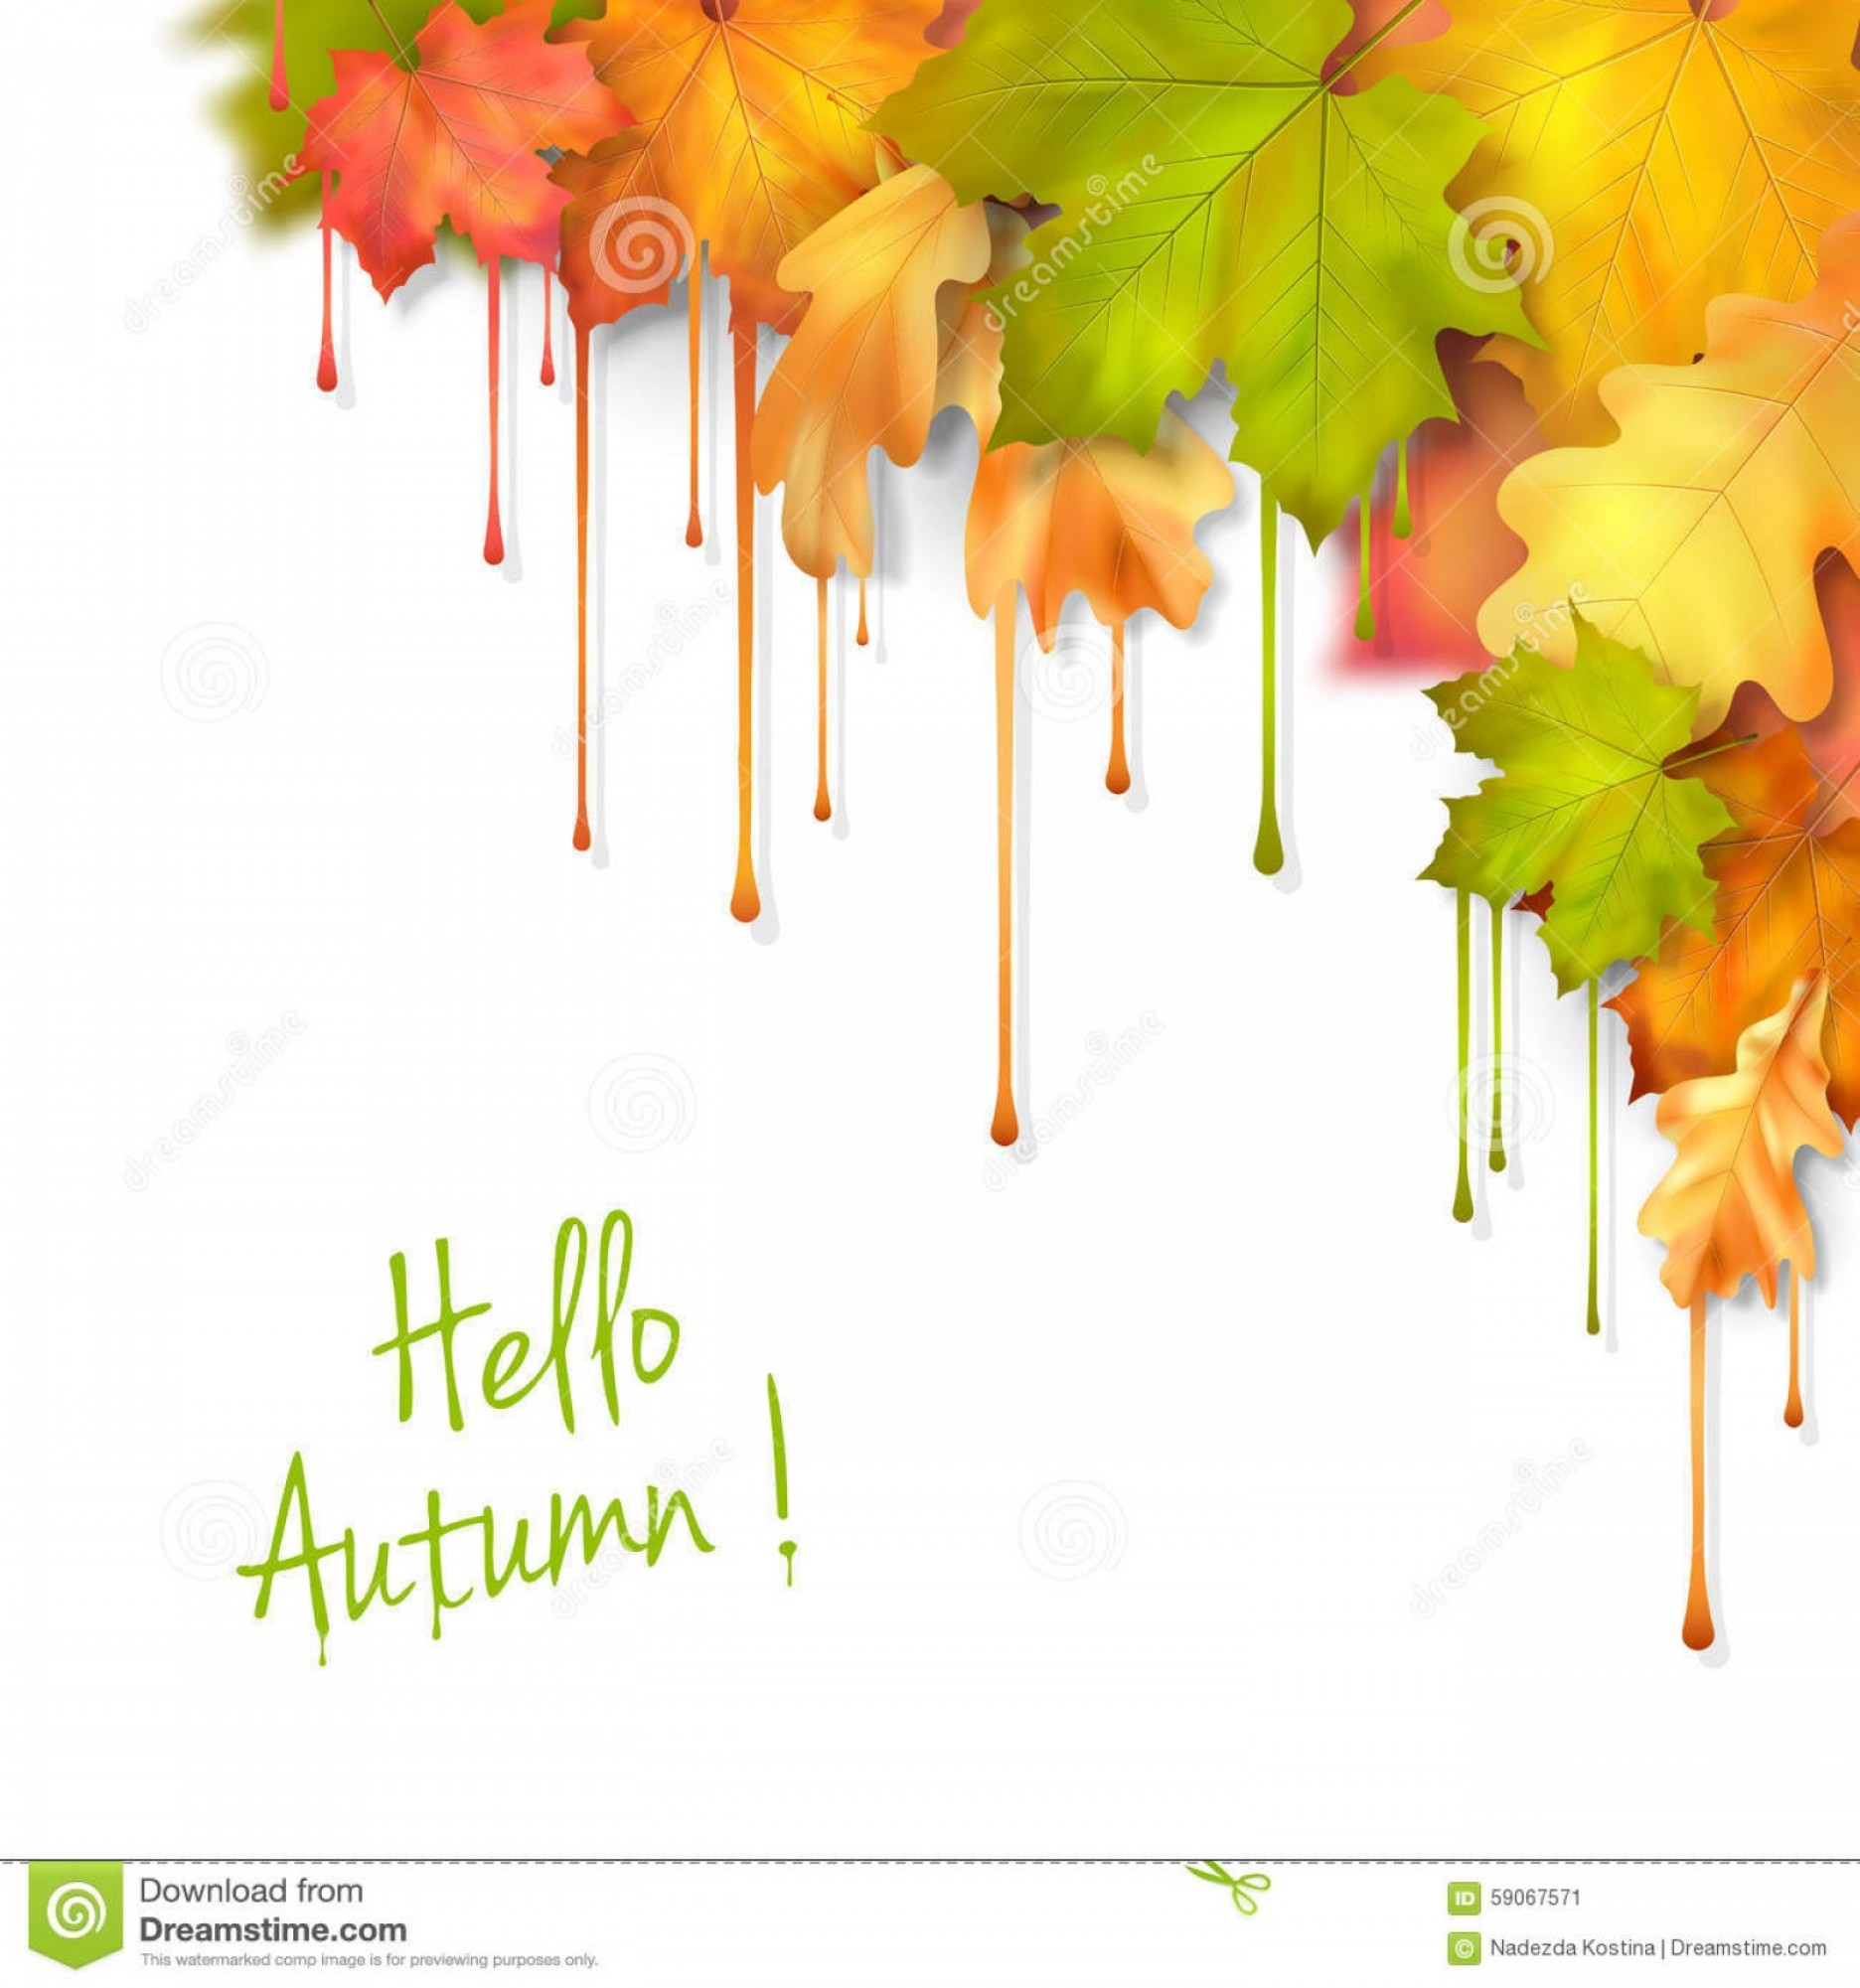 Dripping Paint Vector Illustration: Stock Illustration Autumn Vector Dripping Paint Leaves Fall Artistic Corner Design White Background Image